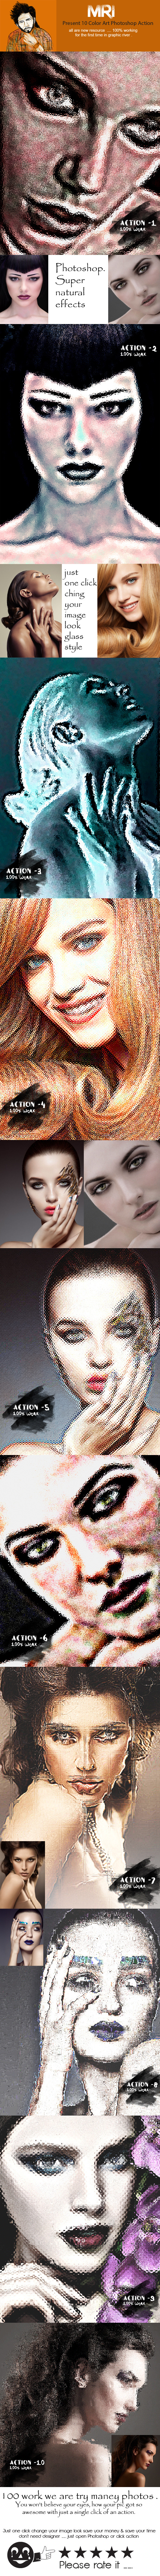 10 Glass Art Action - Actions Photoshop